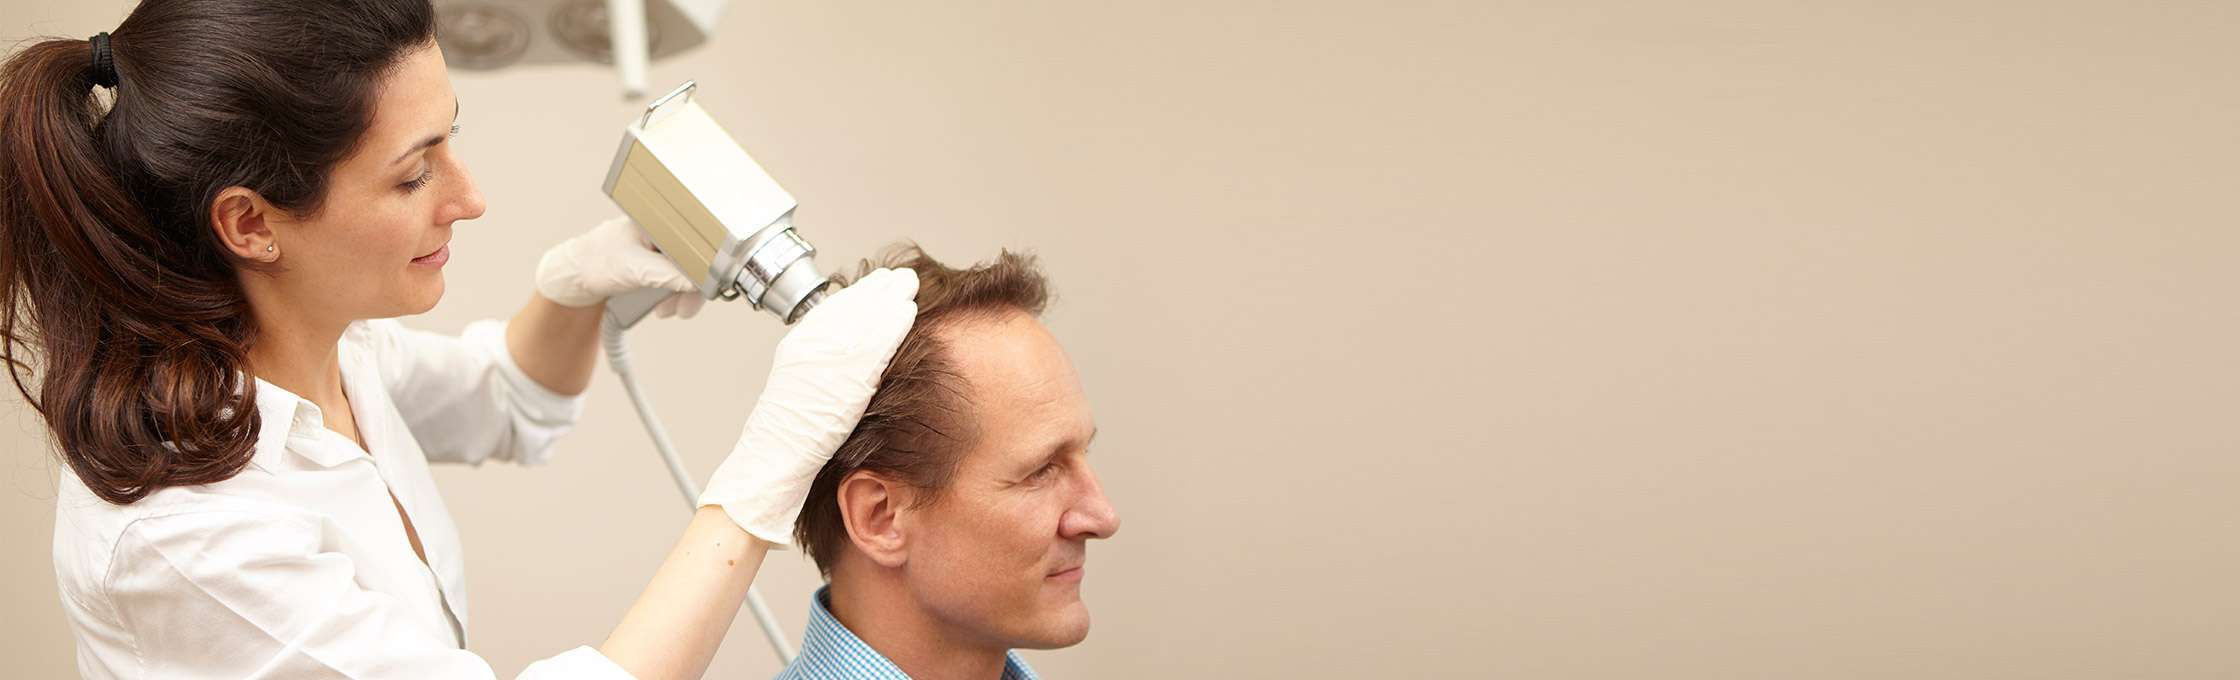 A doctor treats a patient after a detailed consultation with the mesotherapy gun against hair loss. The hair roots at the head of a male person are stimulated by the injections with the mesotherapy gun.